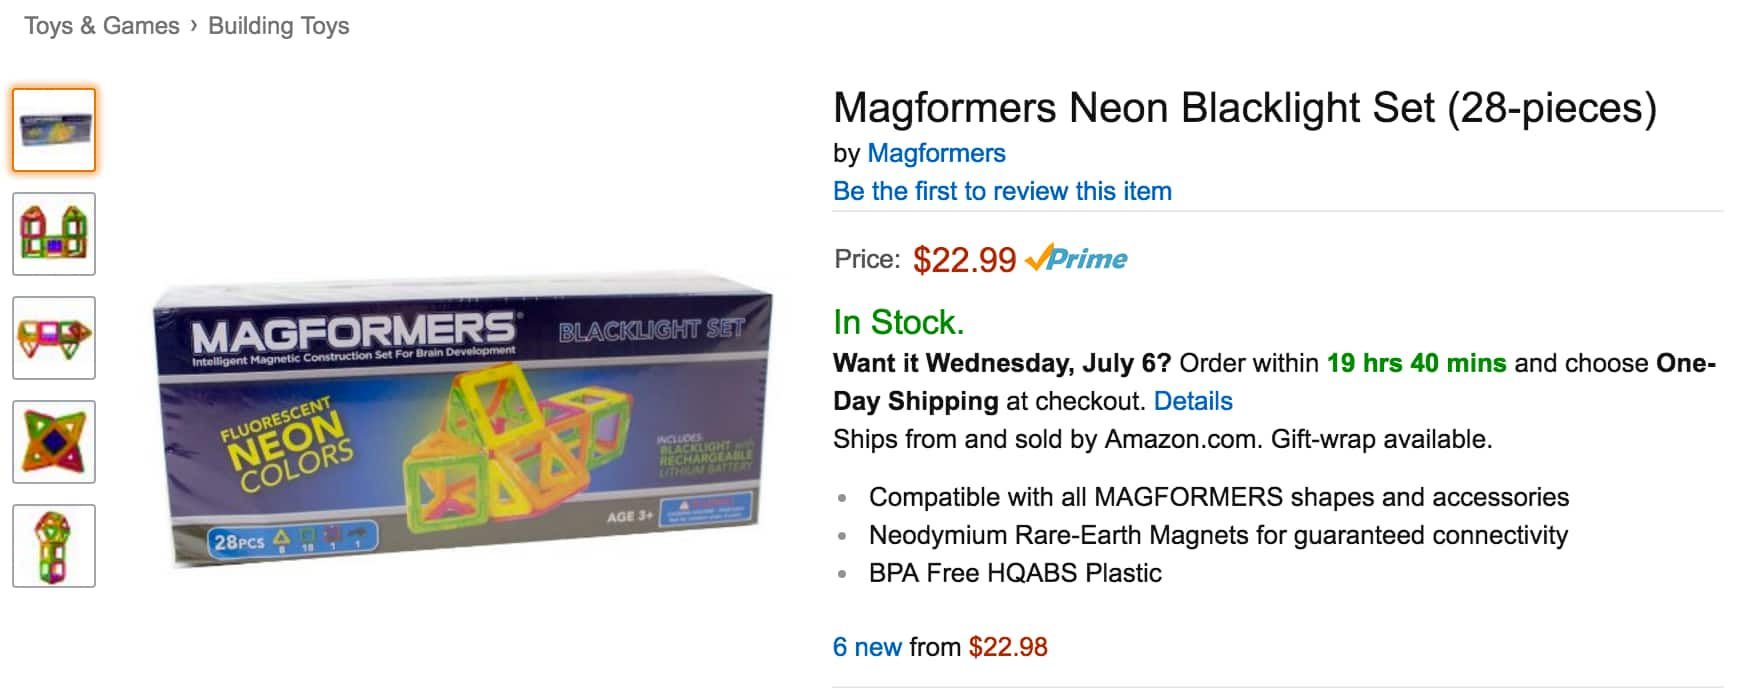 Amazon Prime: Magformers Neon Blacklight Set (28-pieces) deal is back: $22.99